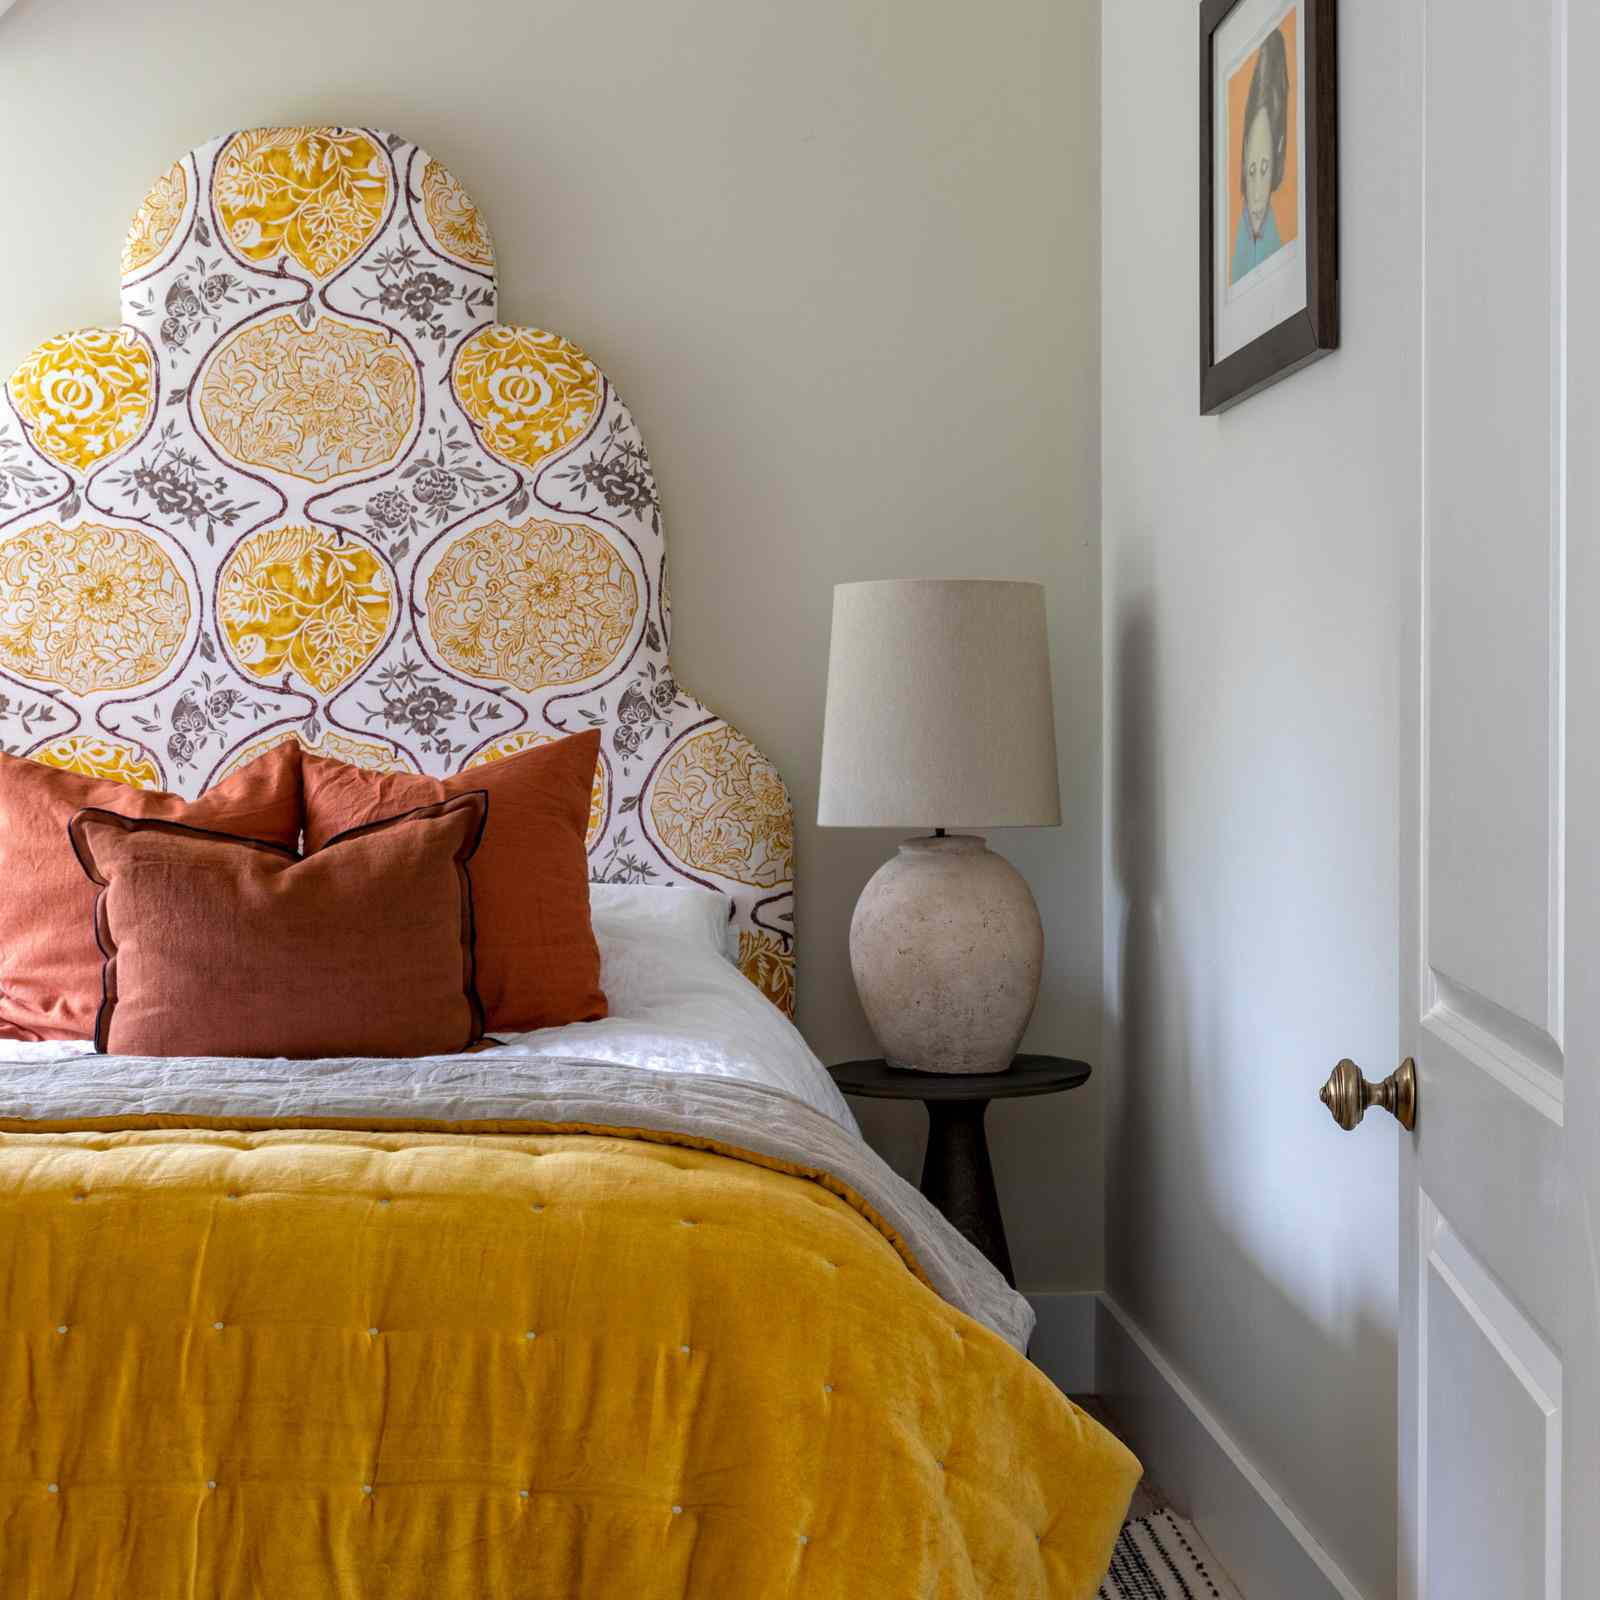 Bedroom with yellow and orange accents